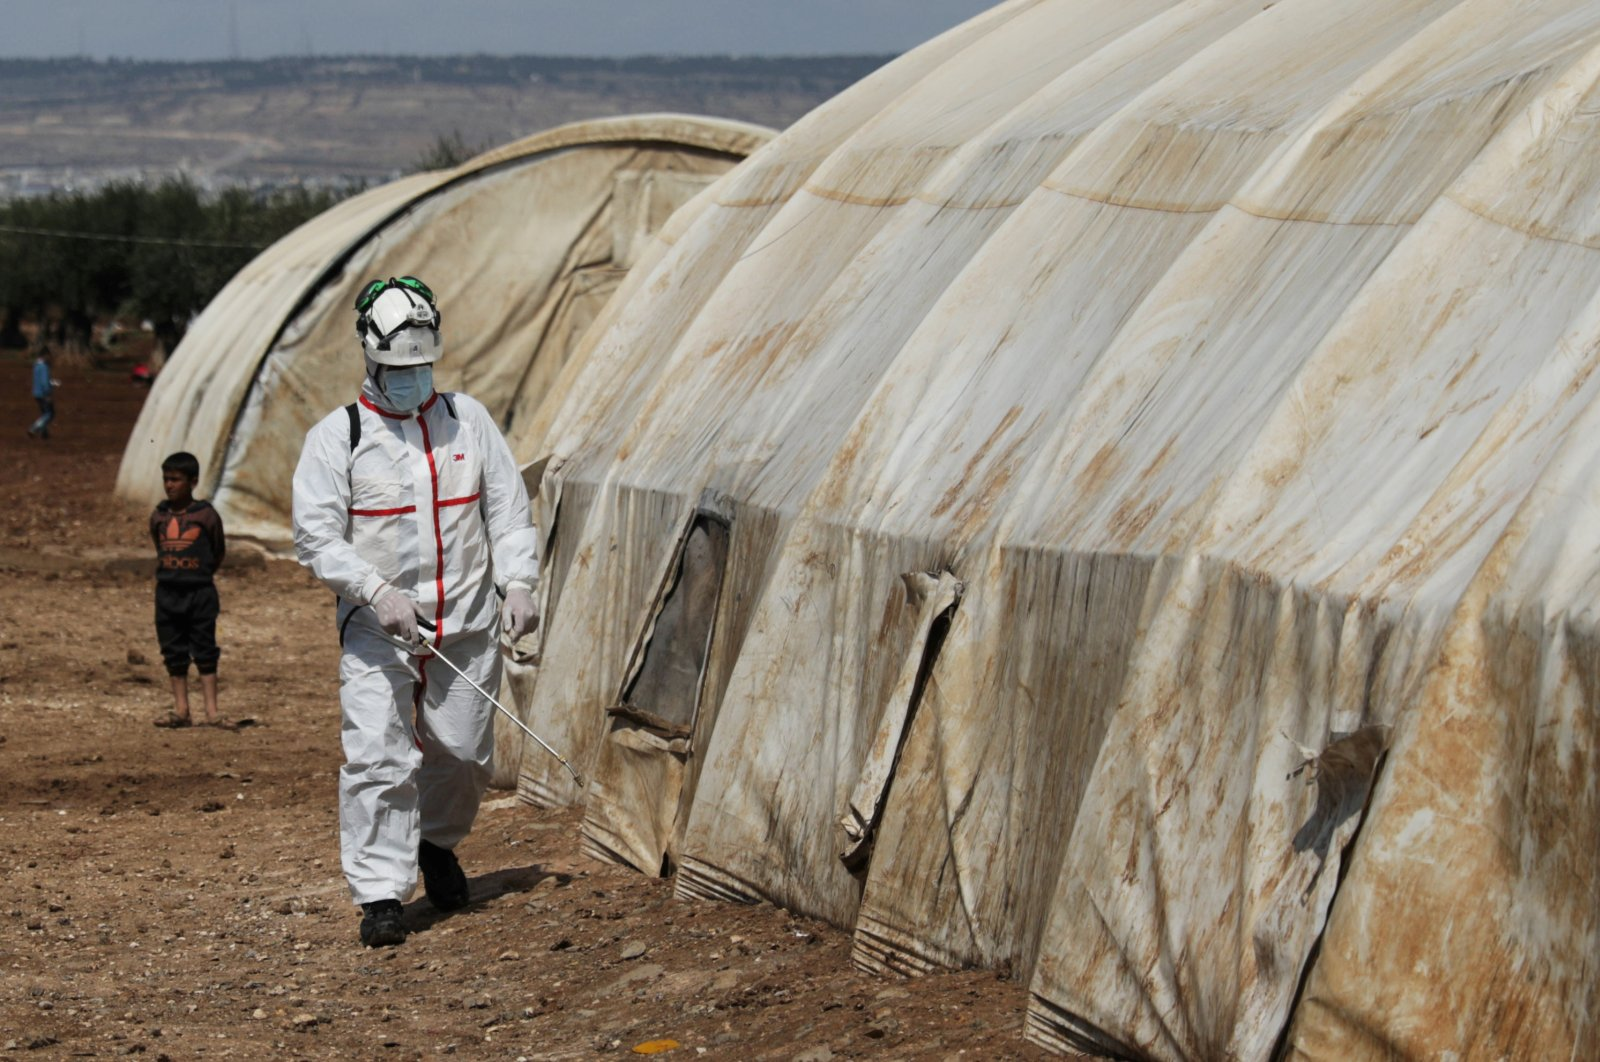 A member of the Syrian Civil Defense sanitizes a tent at the Bab Al-Nour internally displaced persons camp, Azaz, March 26, 2020. (REUTERS Photo)